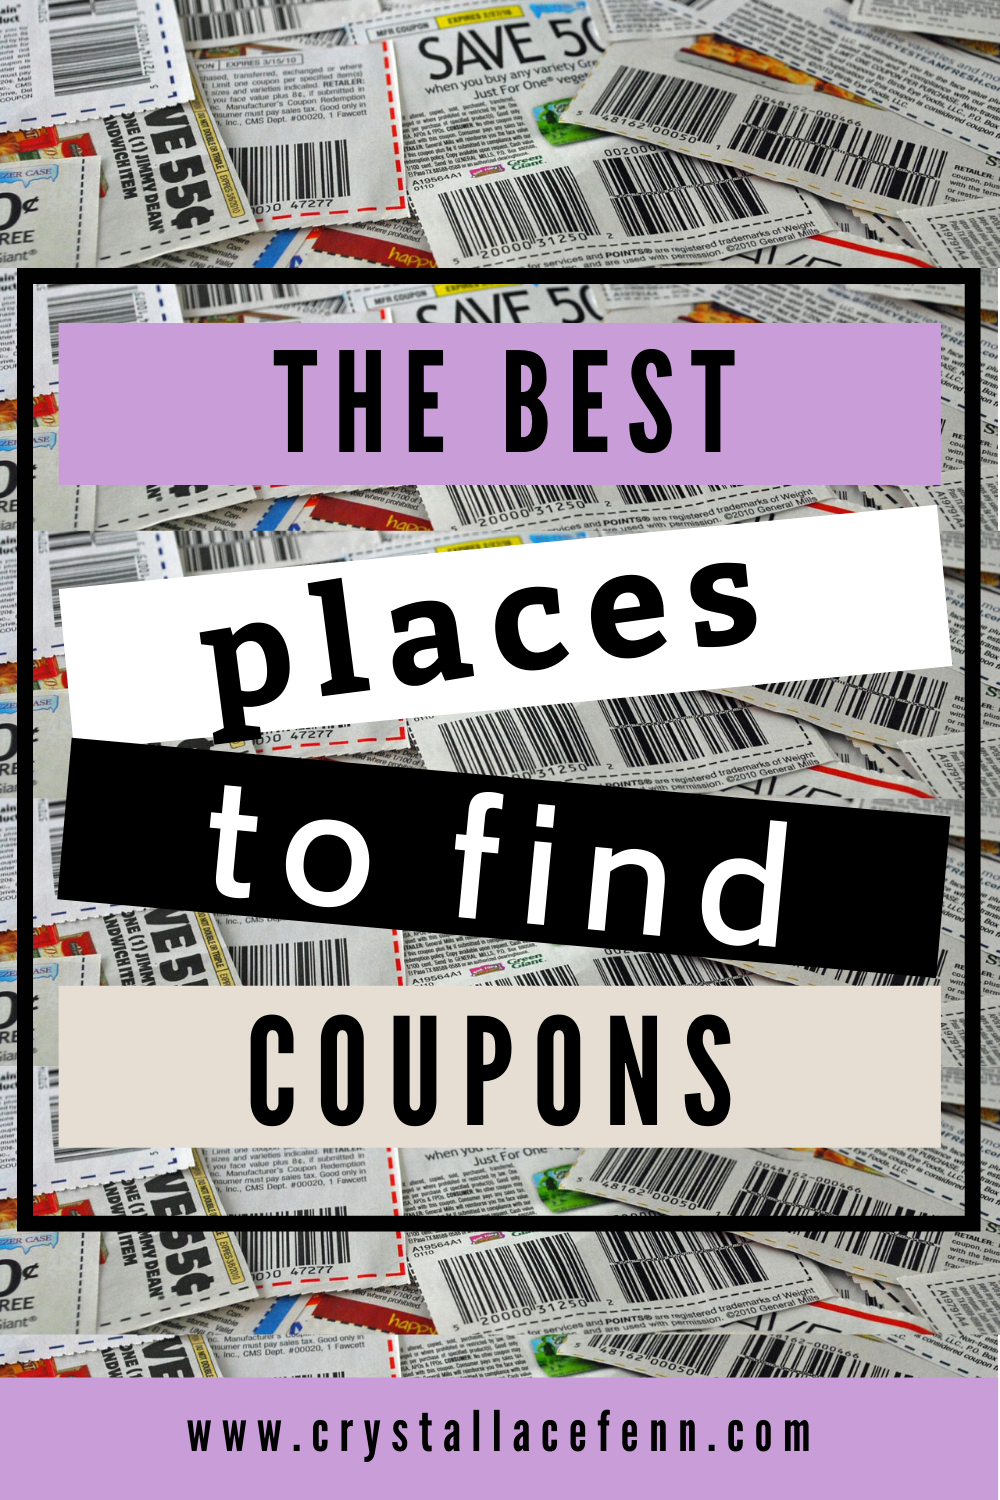 The Best Places To Find Coupons Where To Find Coupons How To Find Coupons Find Coupons Coupons Extreme Couponing